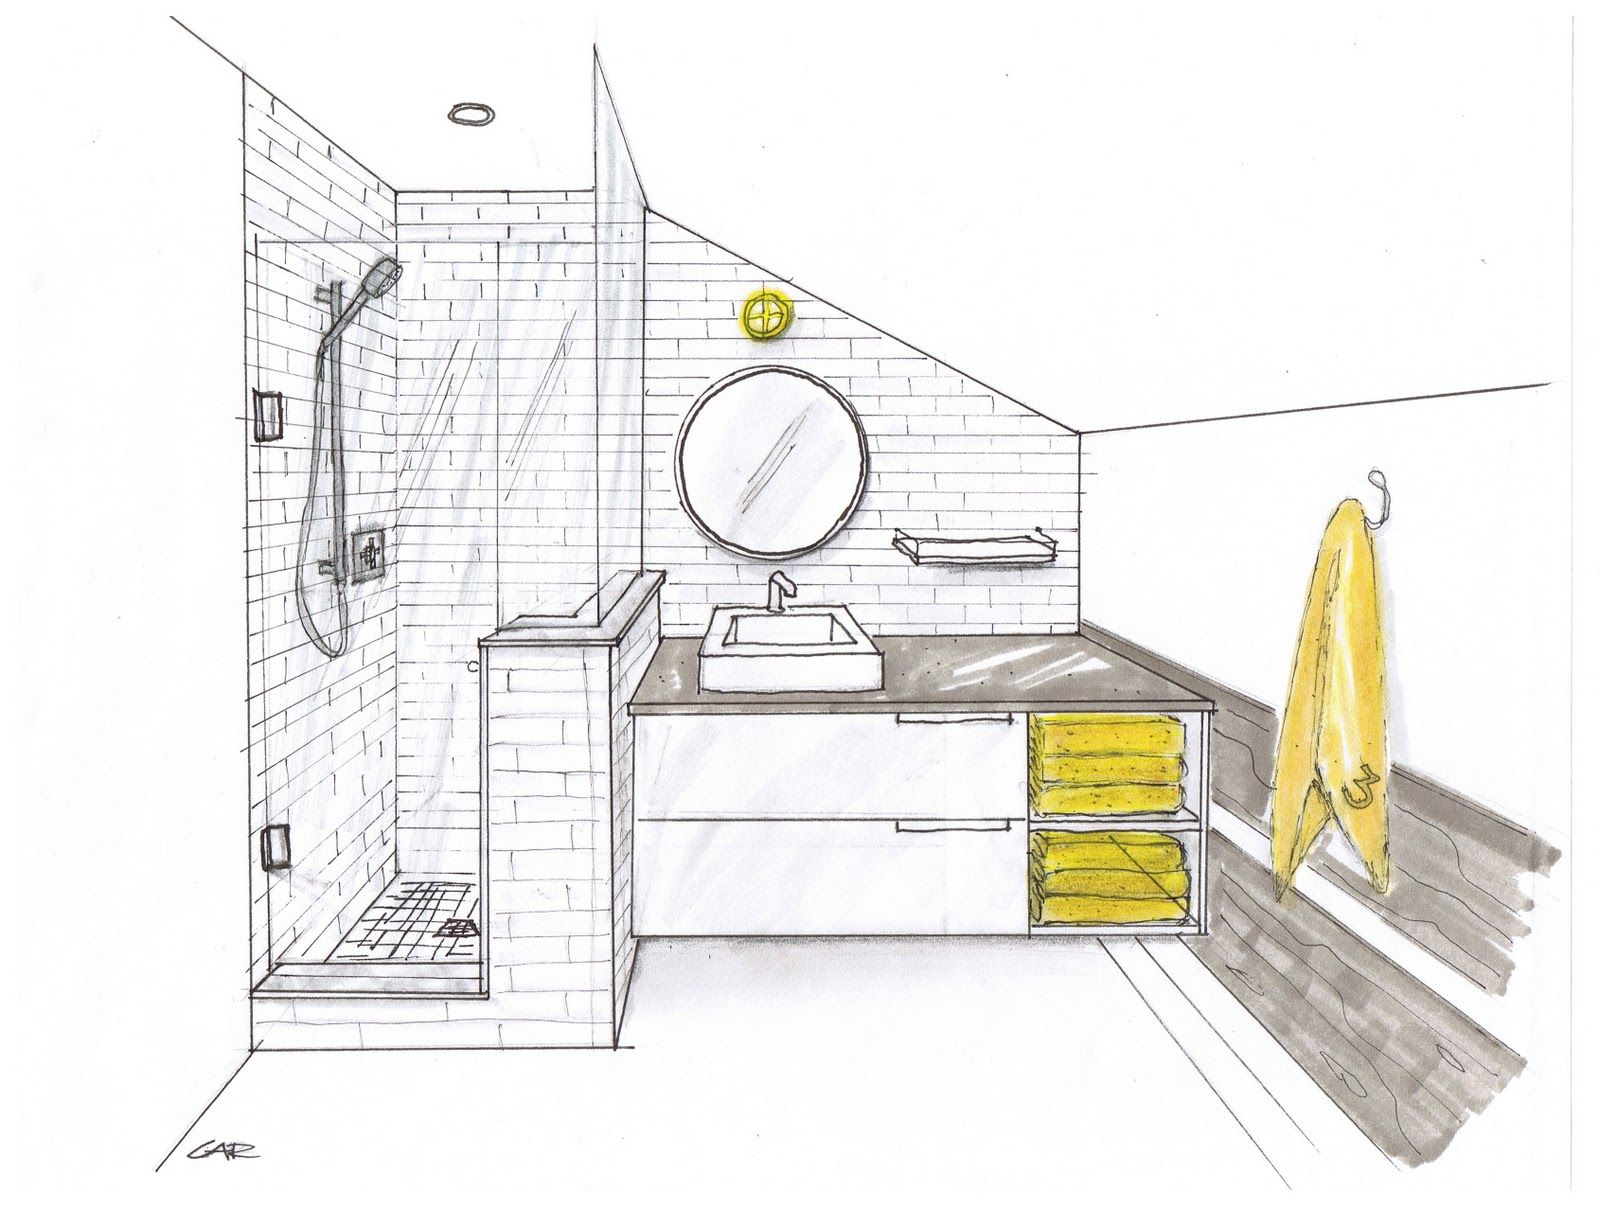 Bathroom one point perspective google search drawings for Architecture modern house design 2 point perspective view